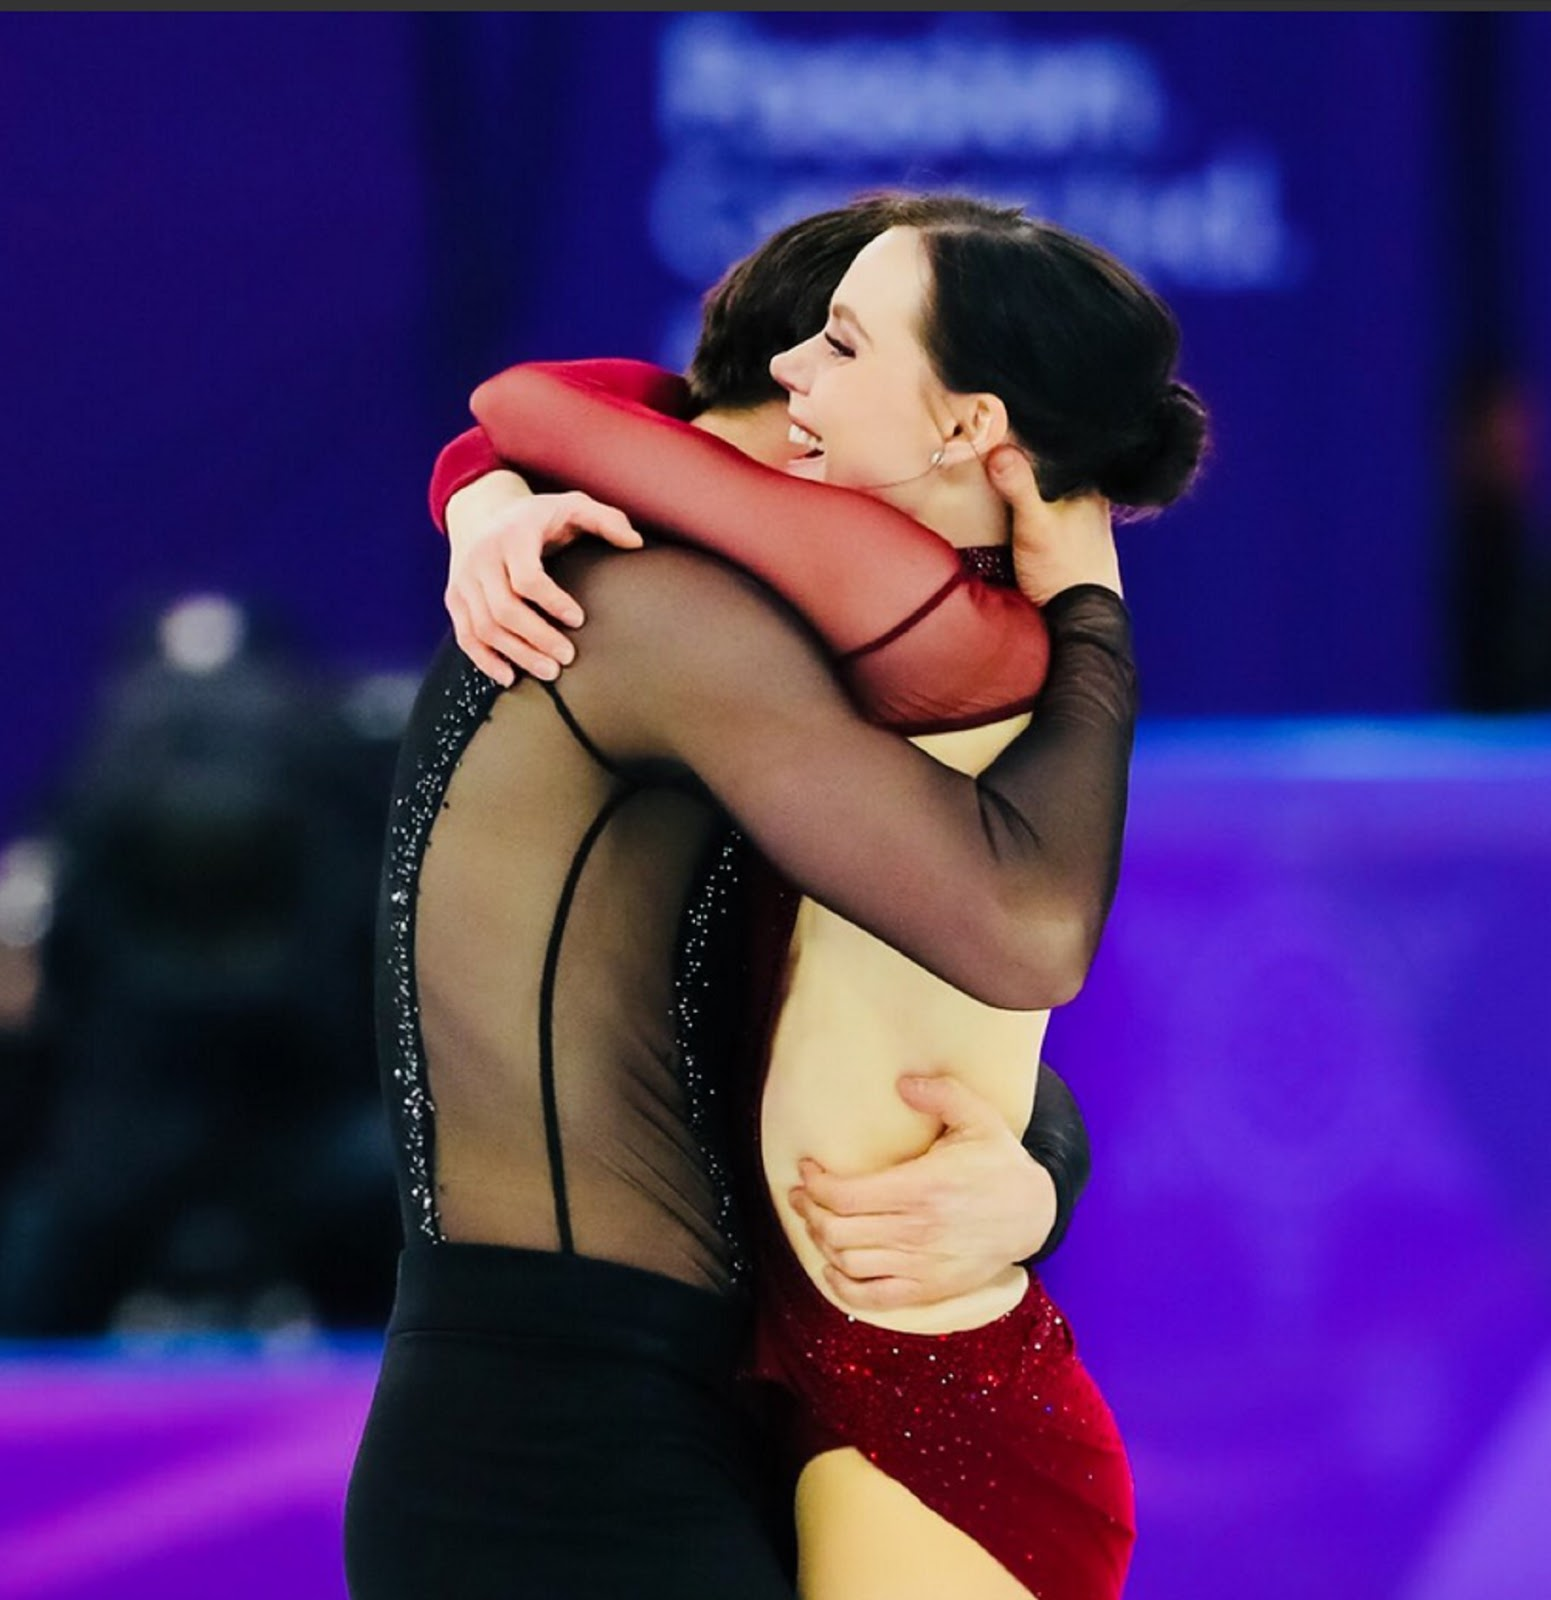 TESSA VIRTUE, SCOTT MOIR 6